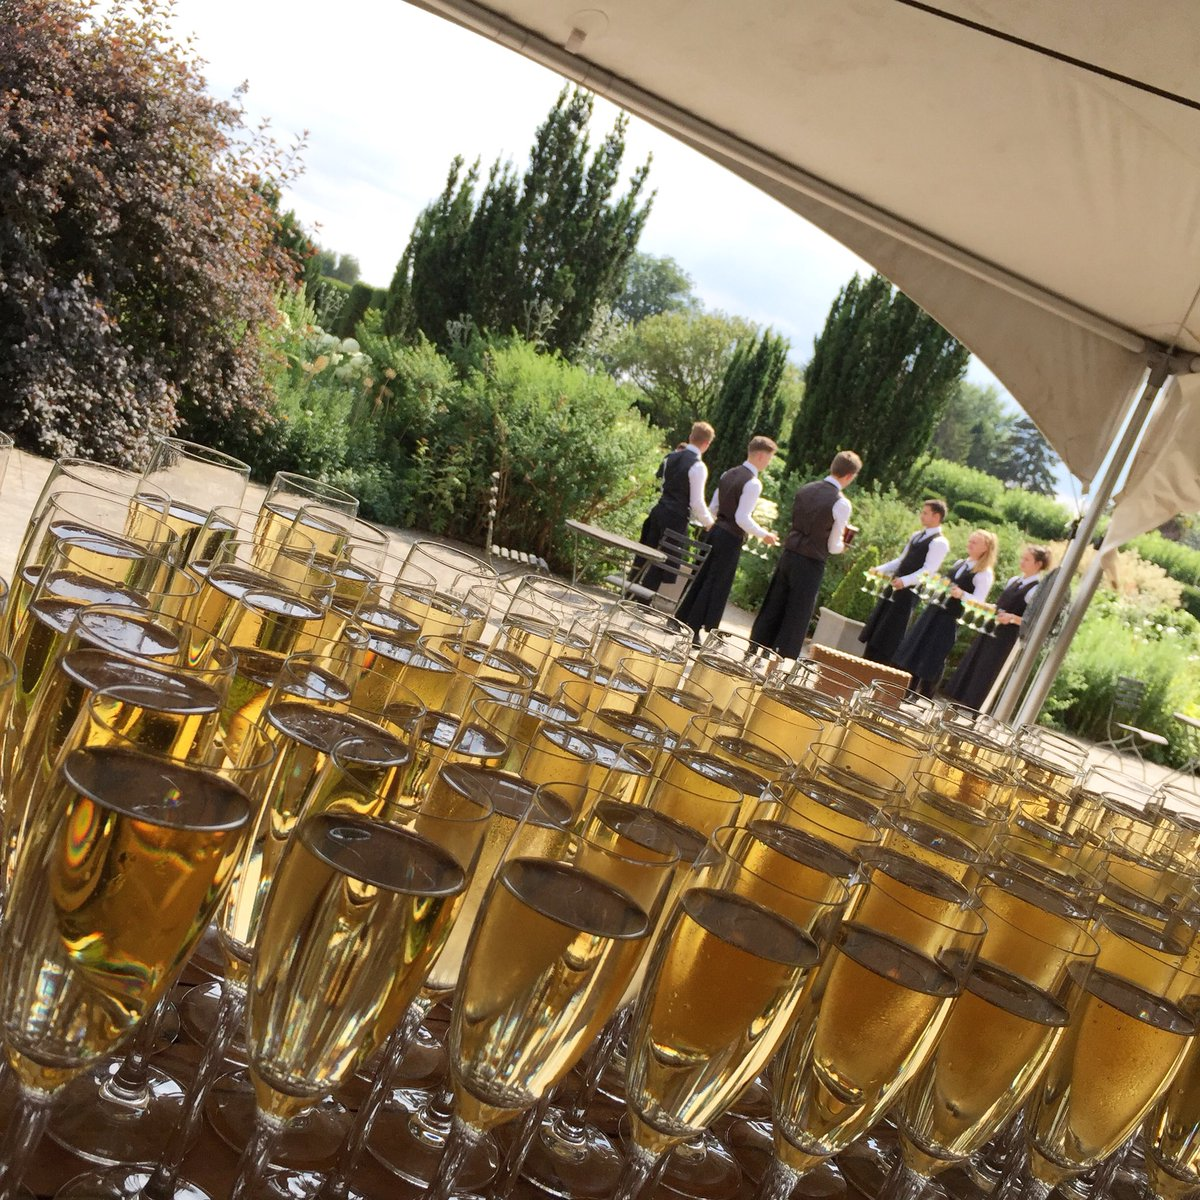 Cheers! Waiting for the guests to make their way to the White Garden for that delicious first glass! #wedding #gettingmarried #drinksreception #weddingvenue #summerwedding #weddingideas